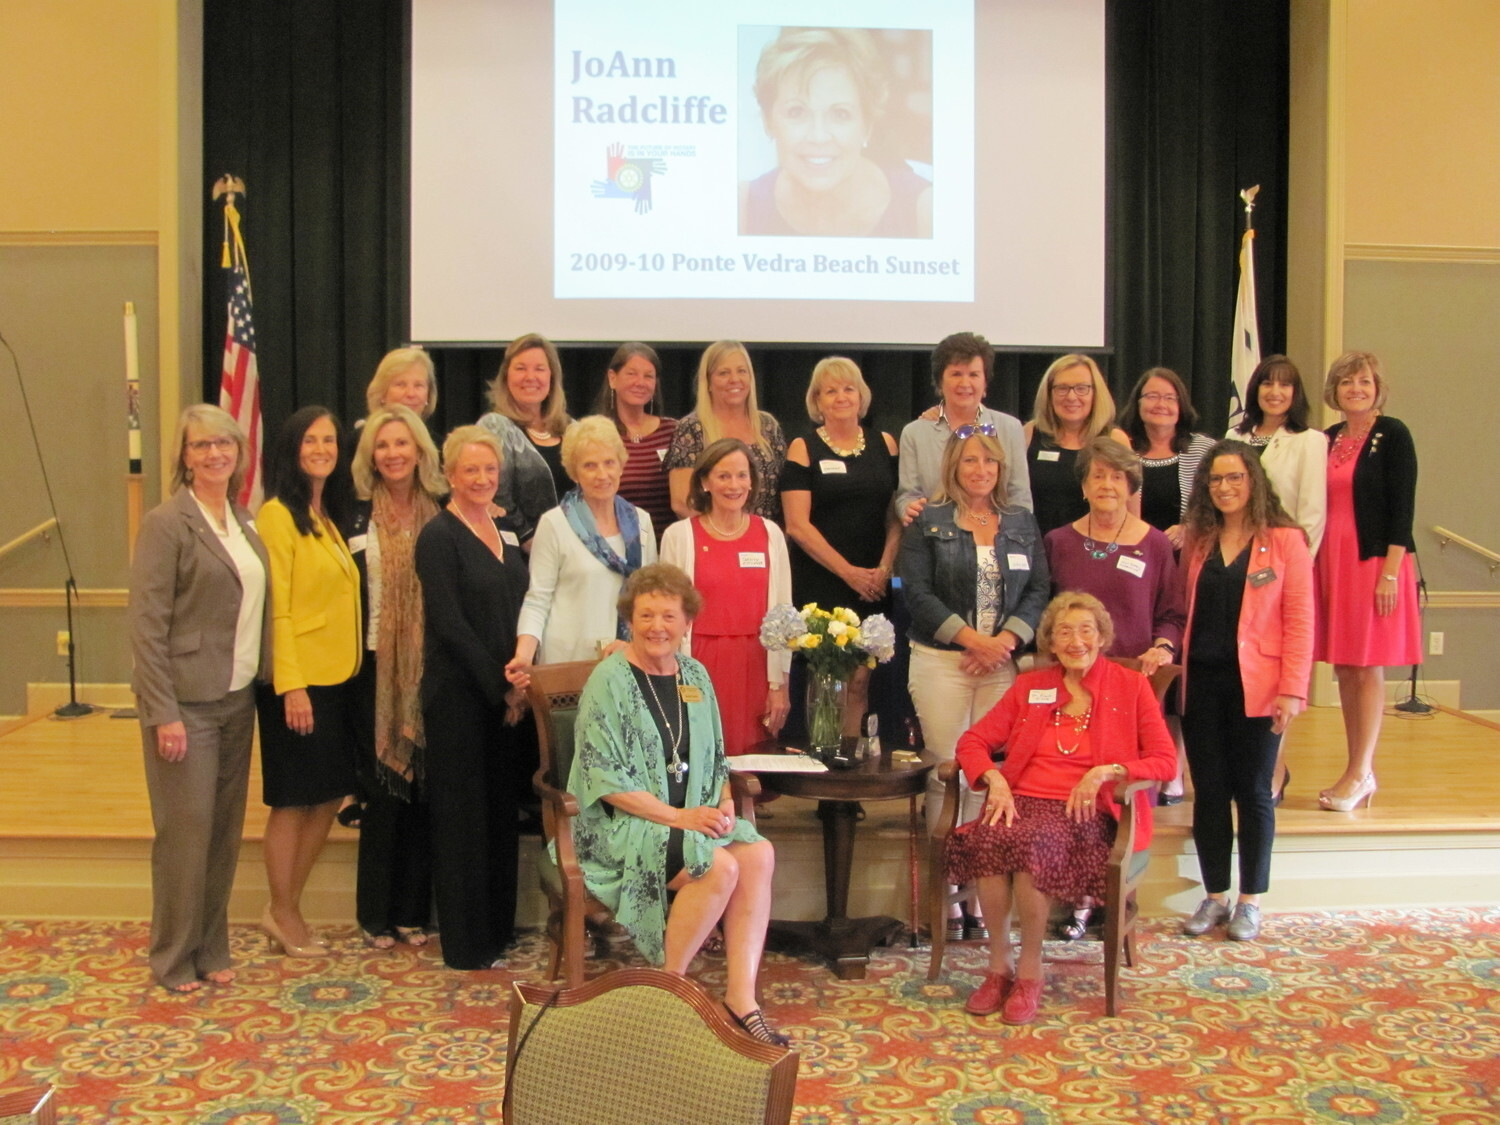 20180530-144002-Past-and-current-female-presidents-and-leaders-of-local-Rotary-clubs-were-honored-Mo